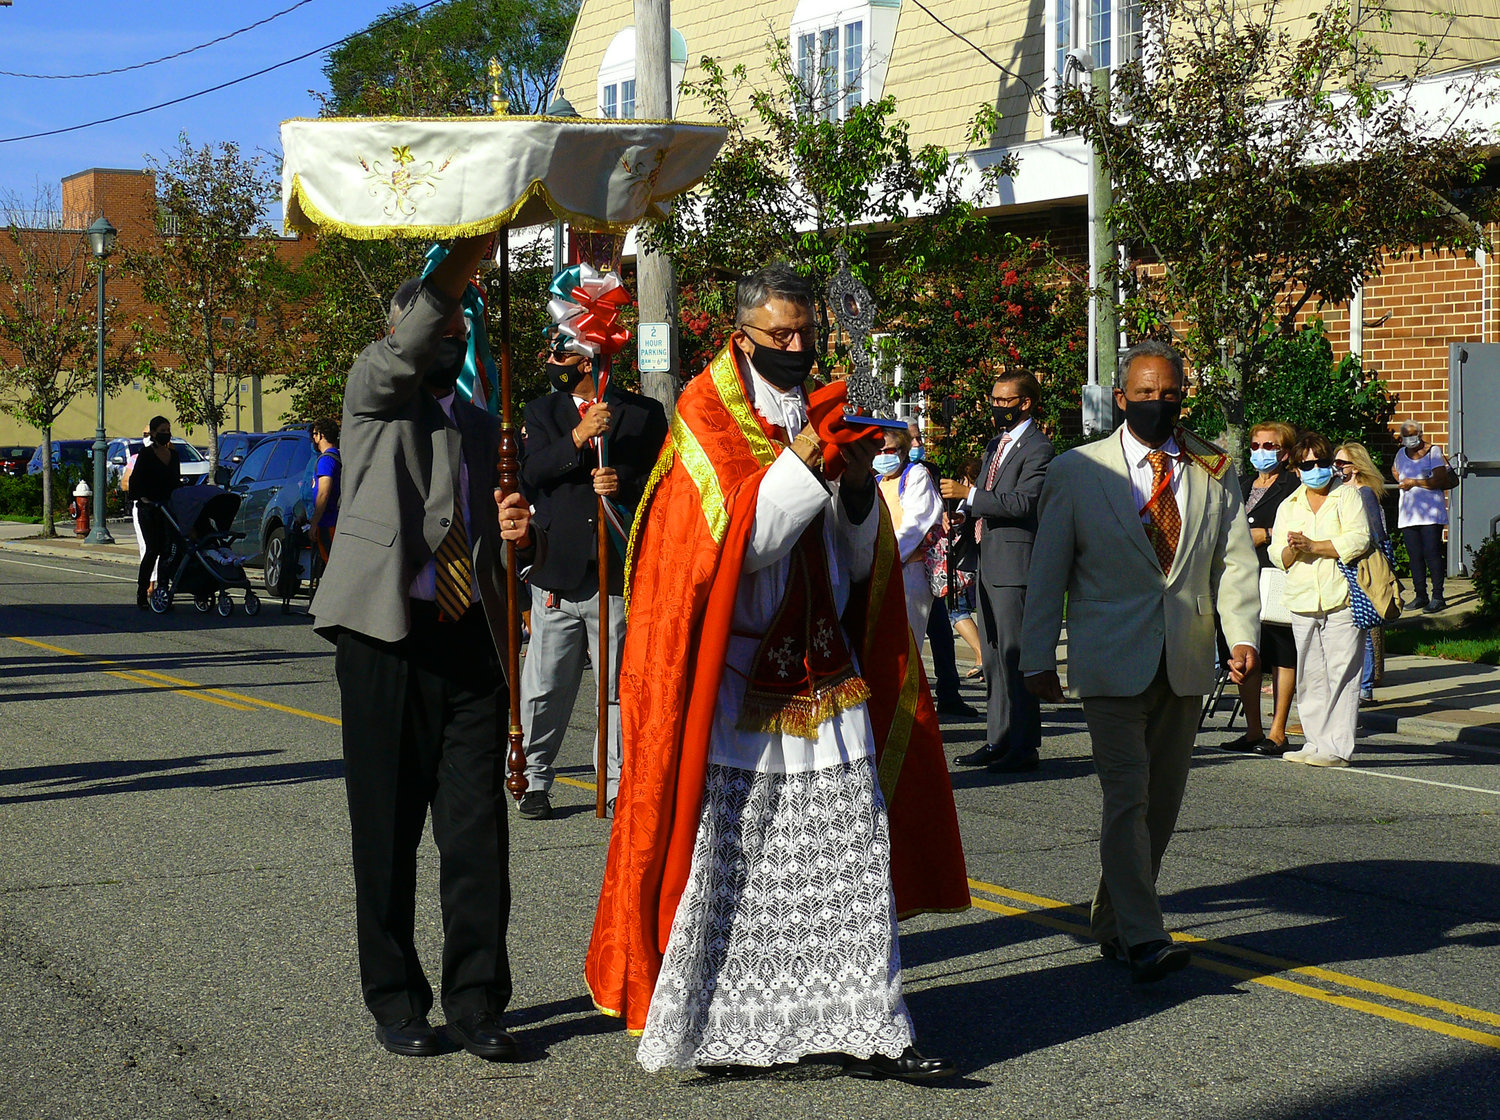 Monsignor  John Tutone led the parade.